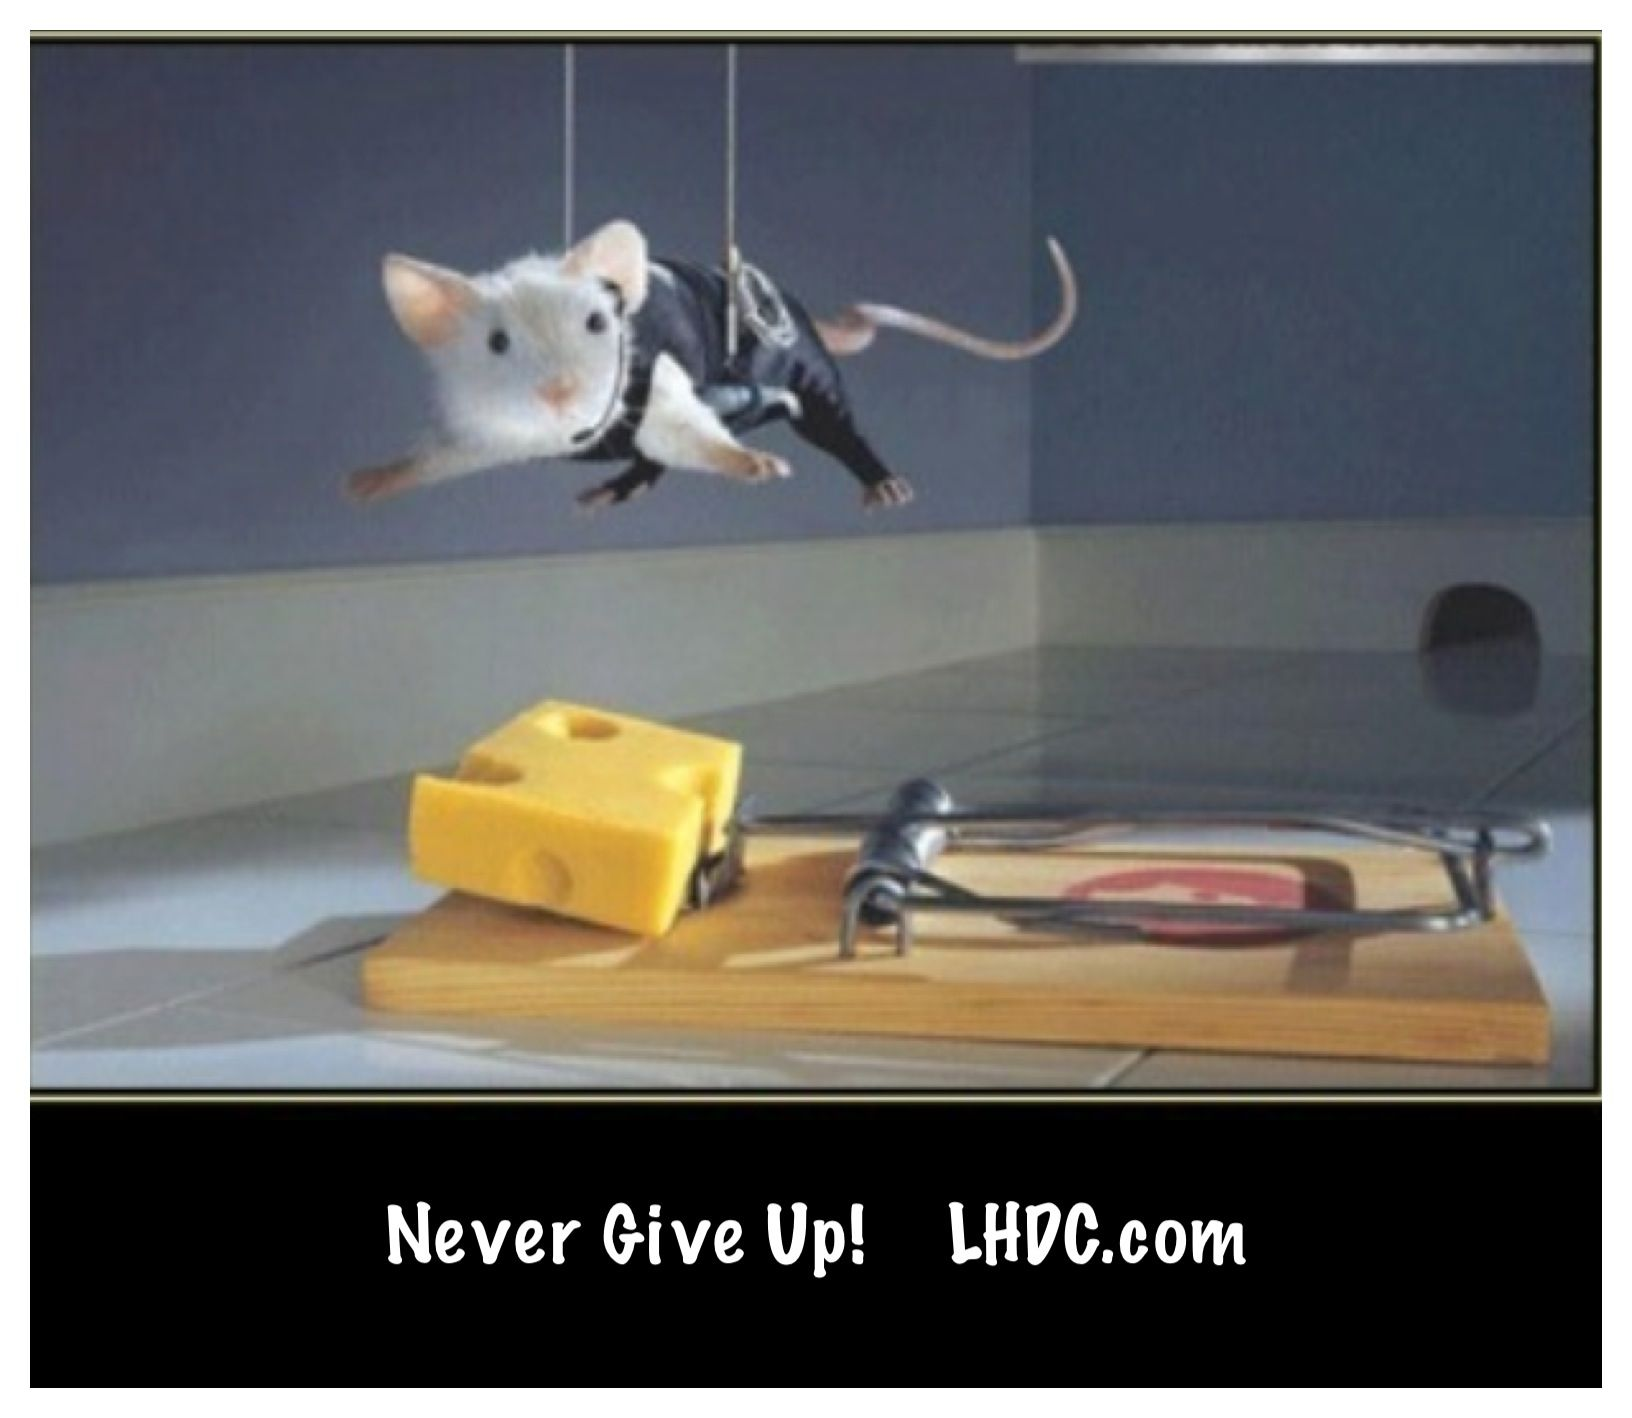 Never give up! Animals doing funny